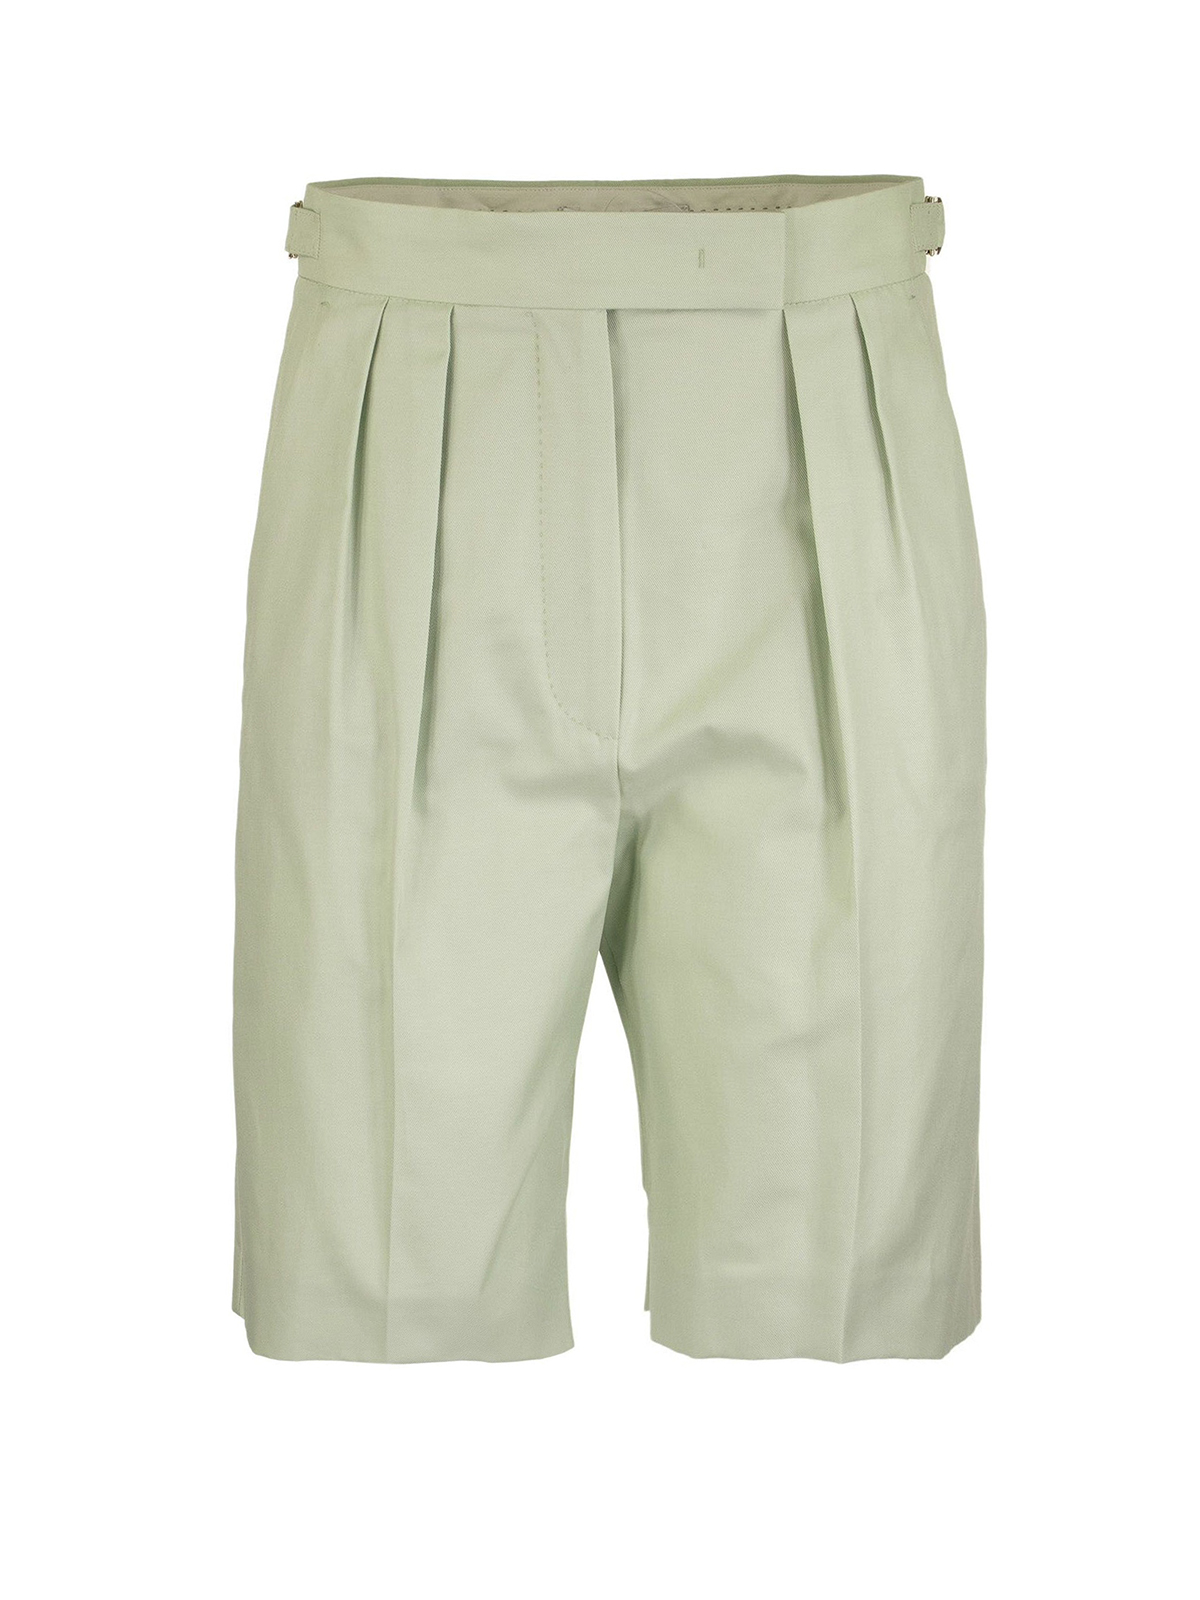 Max Mara SAFARI BERMUDA SHORTS